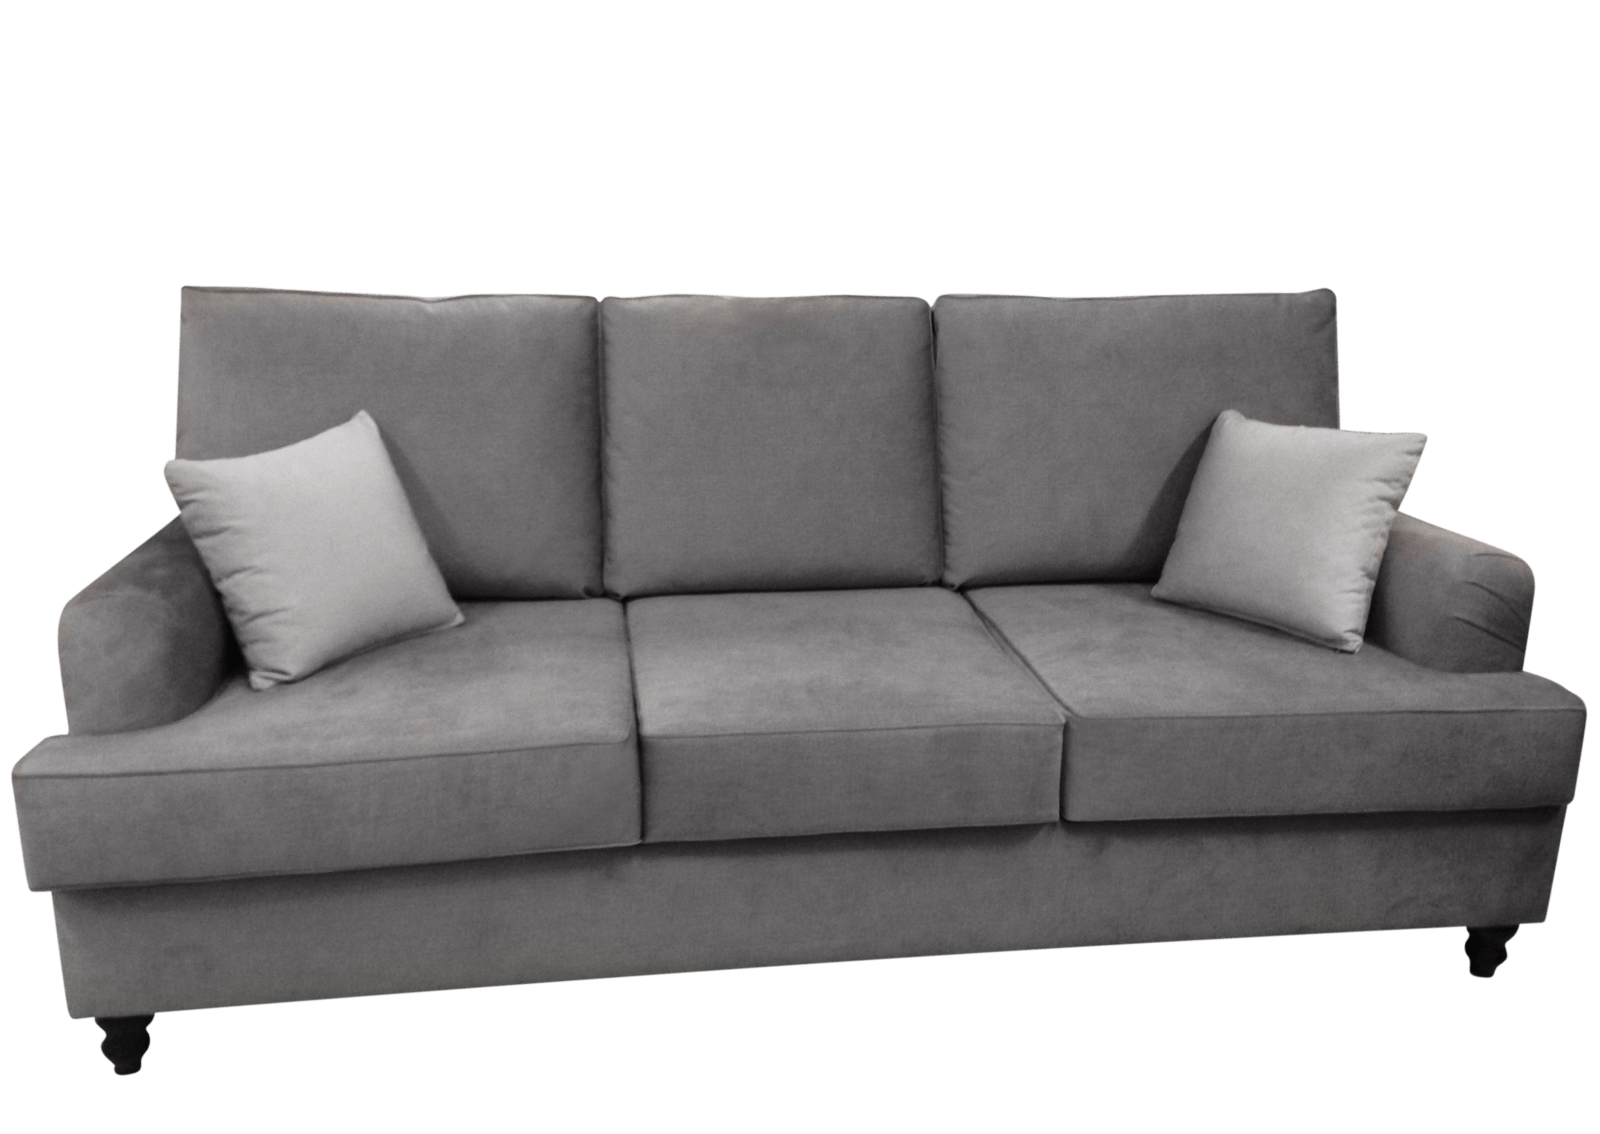 New York 3 Seater Sofa